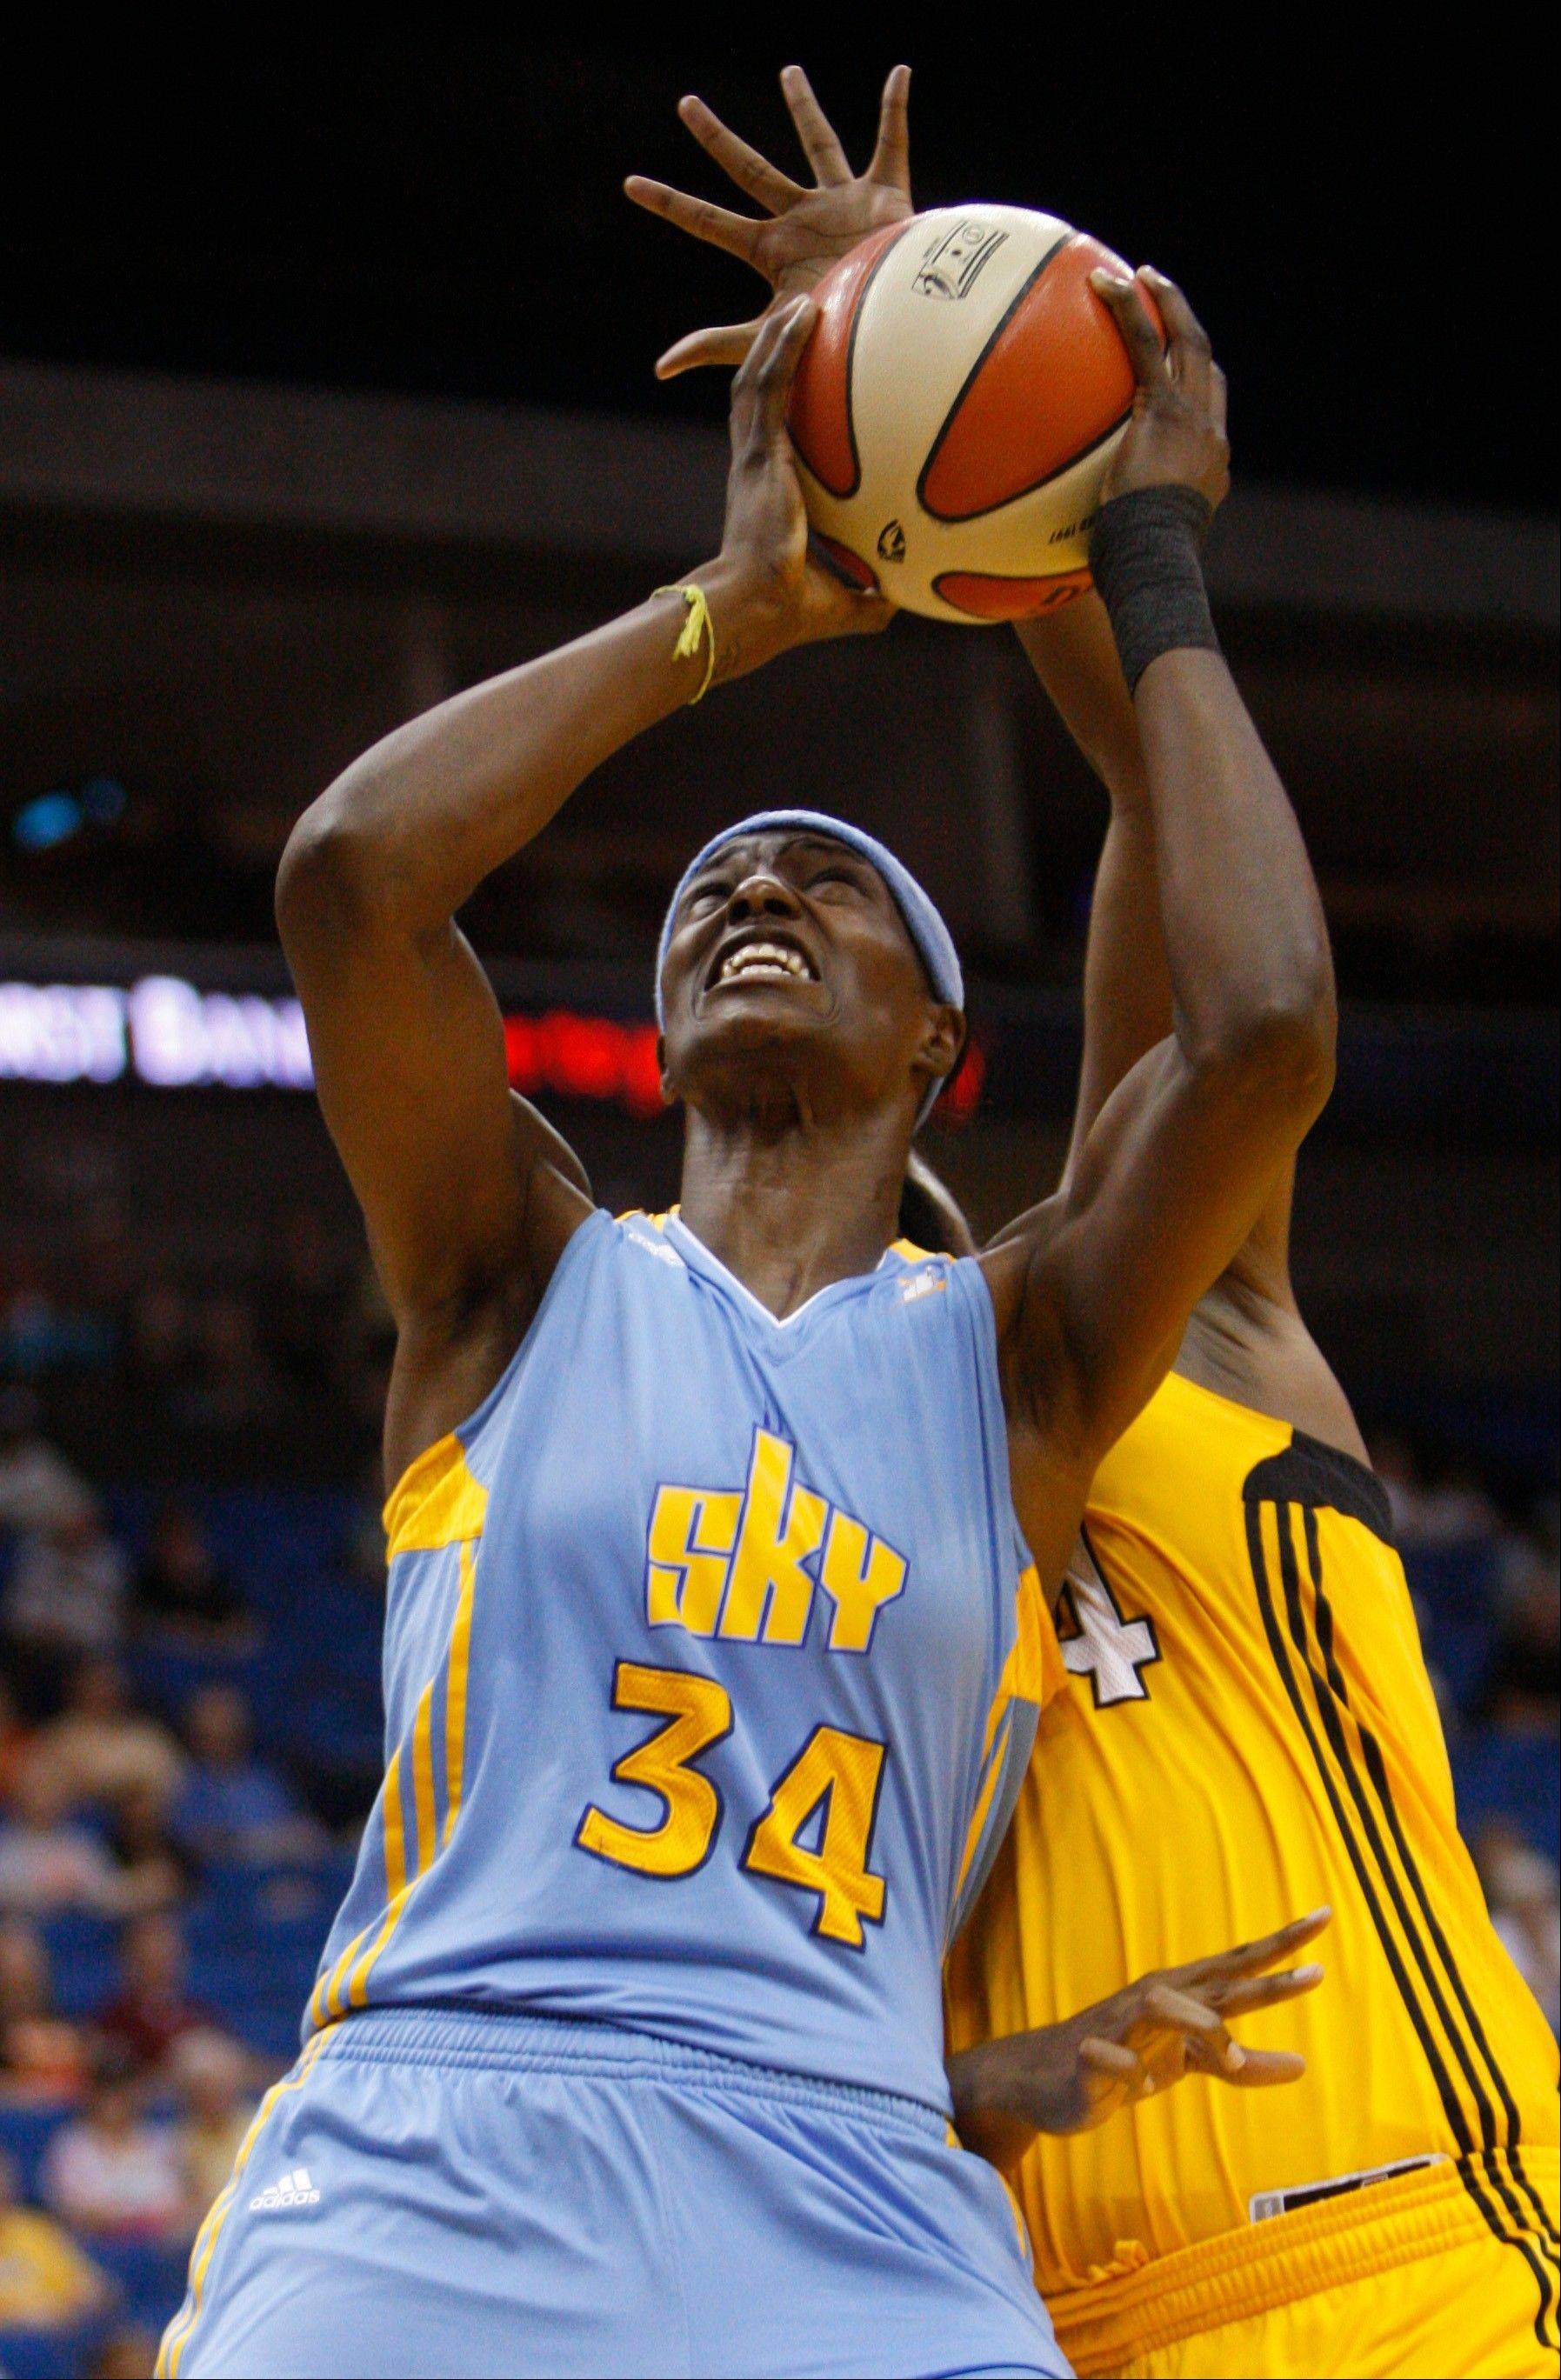 The Sky's Sylvia Fowles rang up a game-high 24 points and snared a career-best 22 rebounds Friday night in the home opener at Allstate Arena.